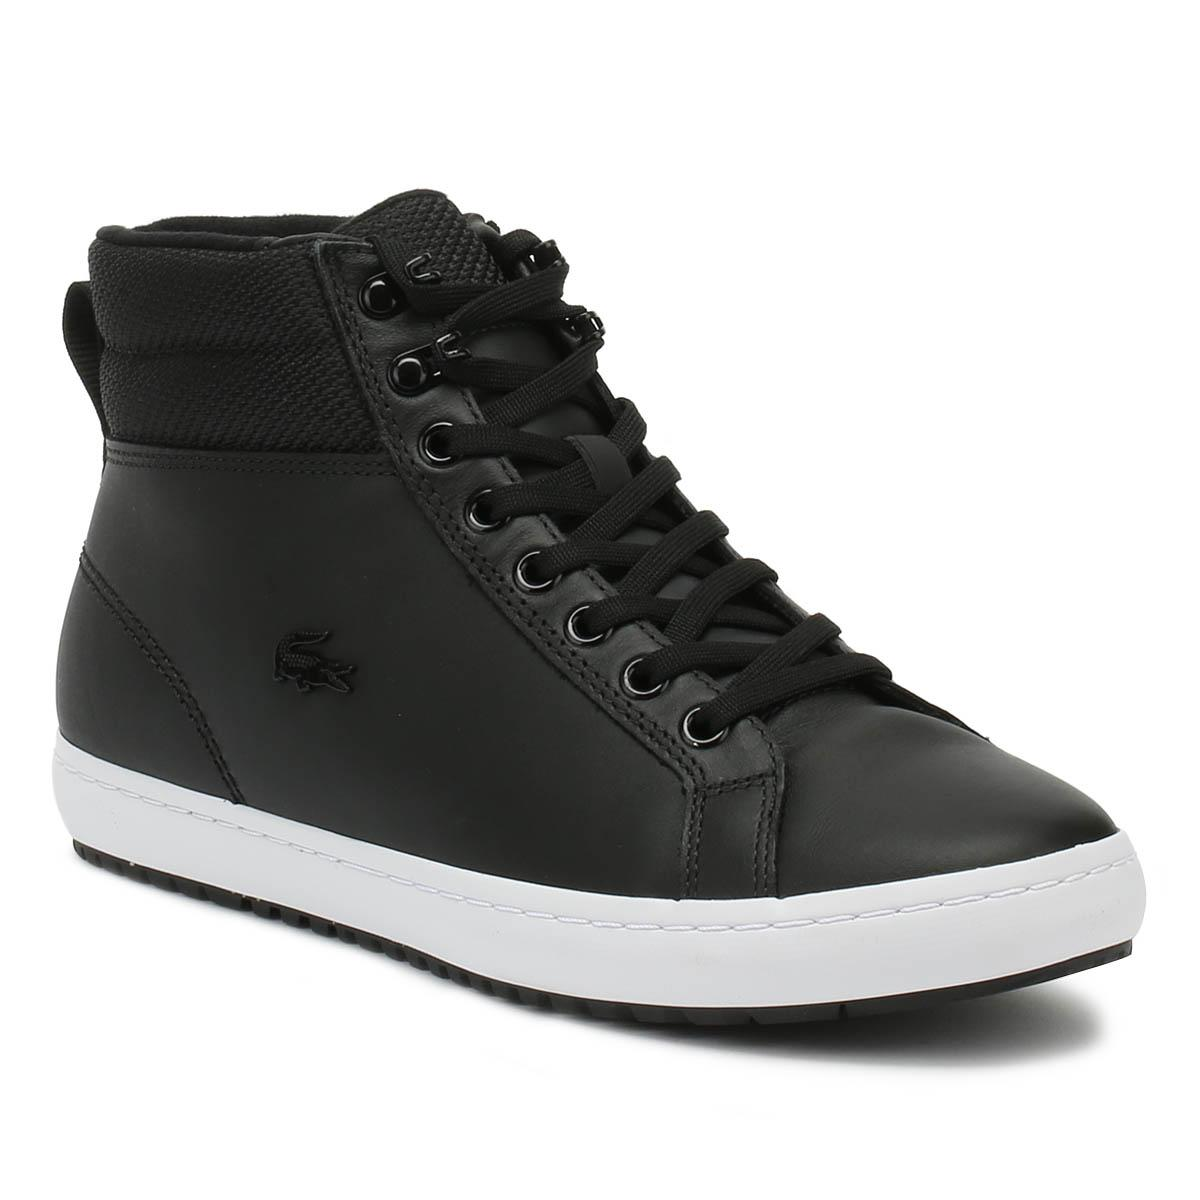 Lyst - Lacoste Straightset Insulac 318 1 Womens Black Trainers in Black 2a4b28d4c6